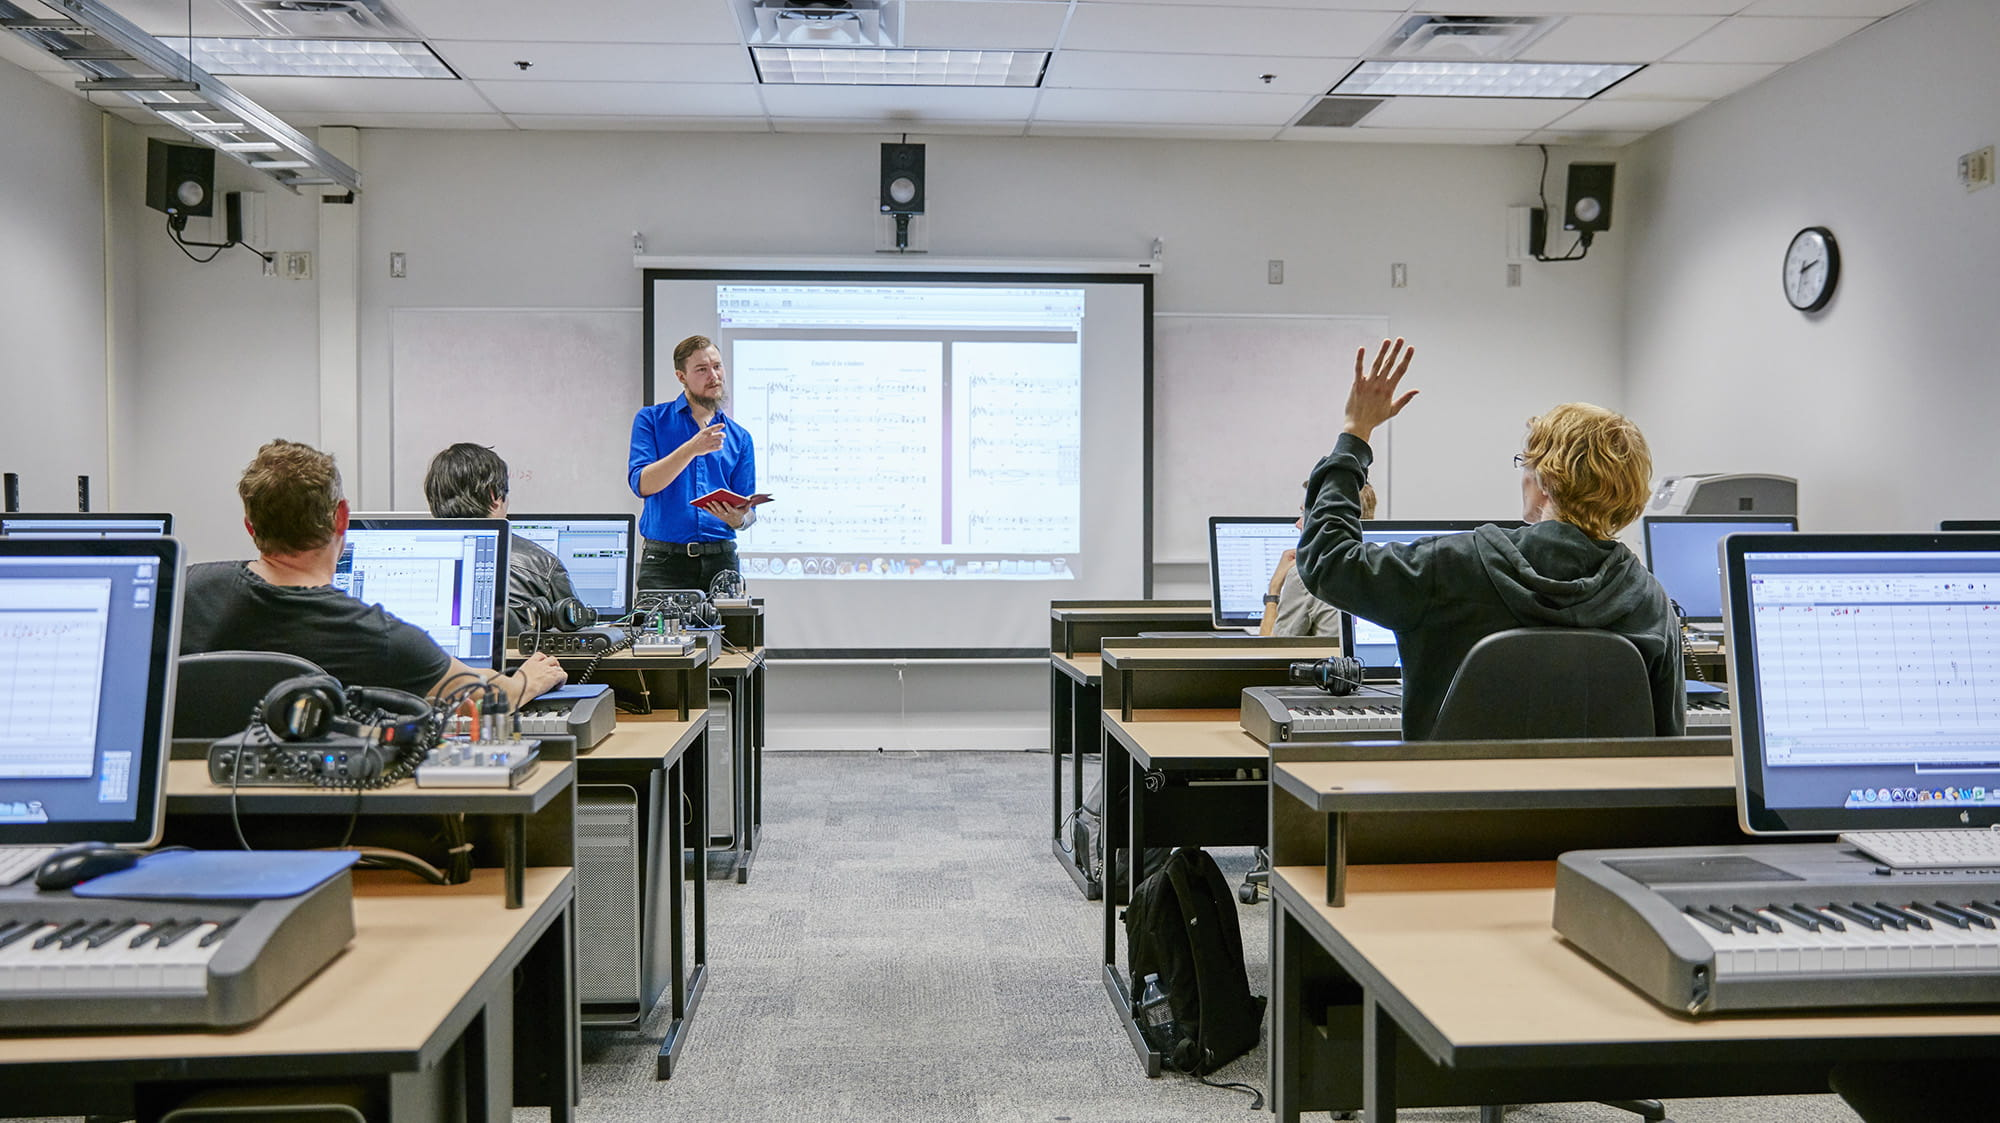 An instructor talking to students who are at computers with music keyboards